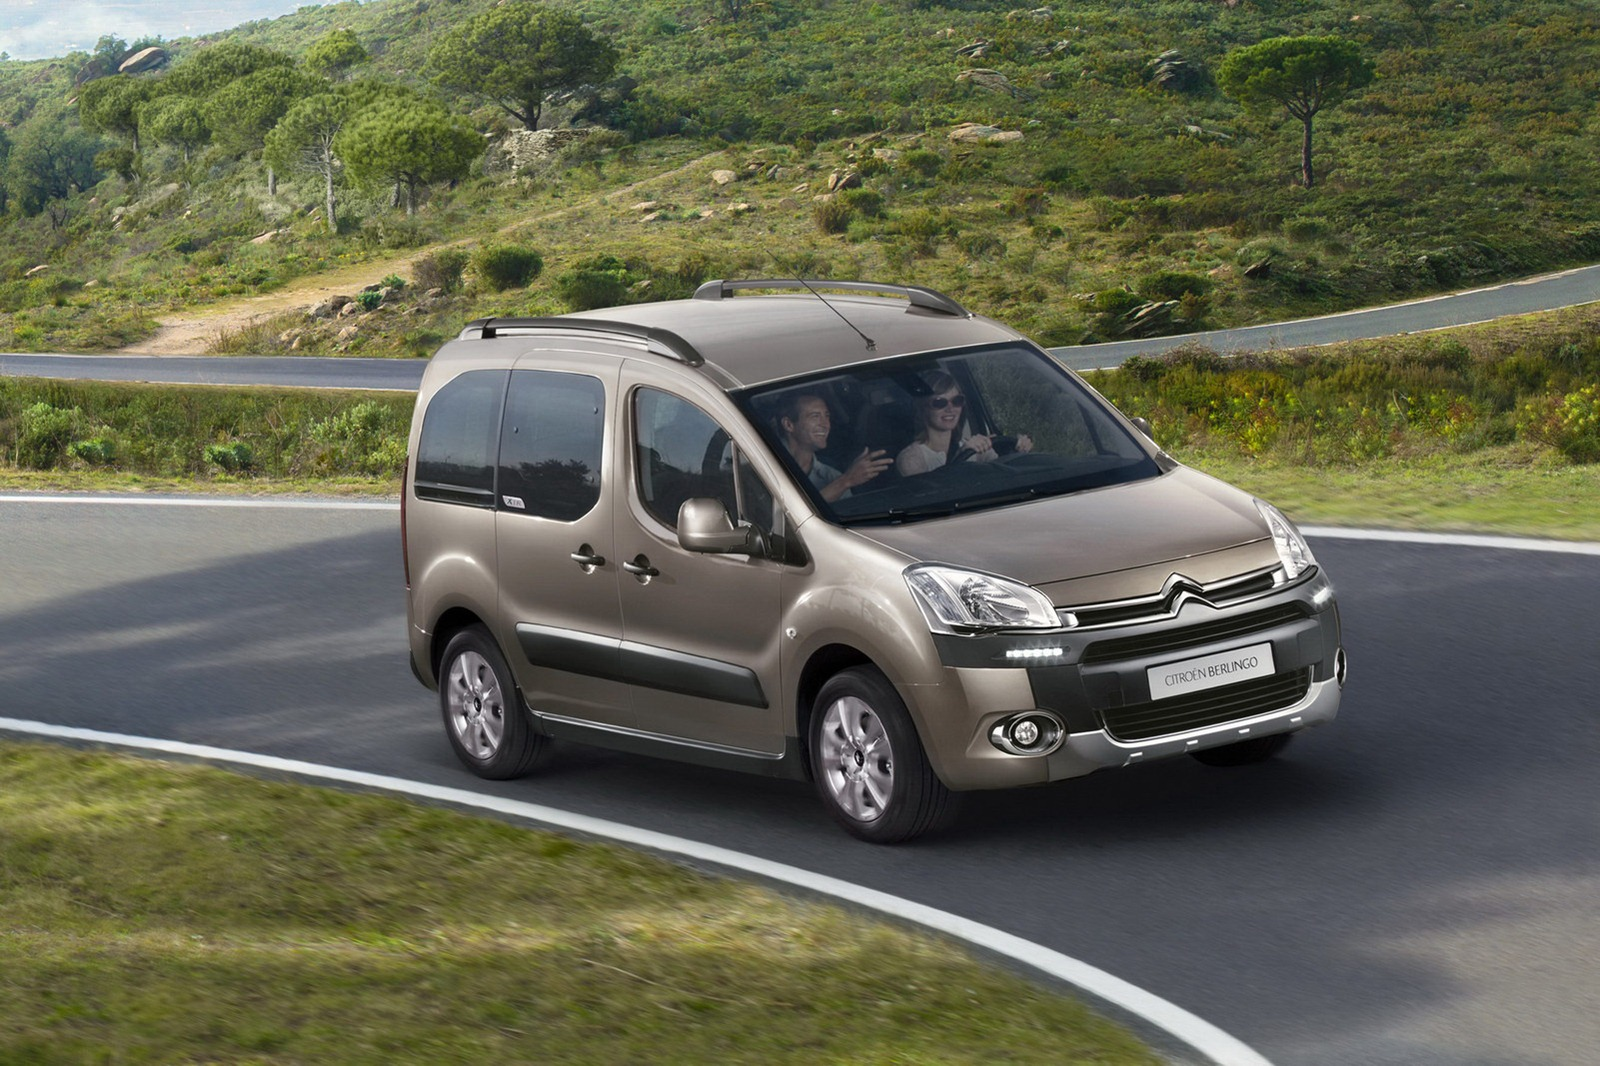 2012 Citroen Berlingo #7